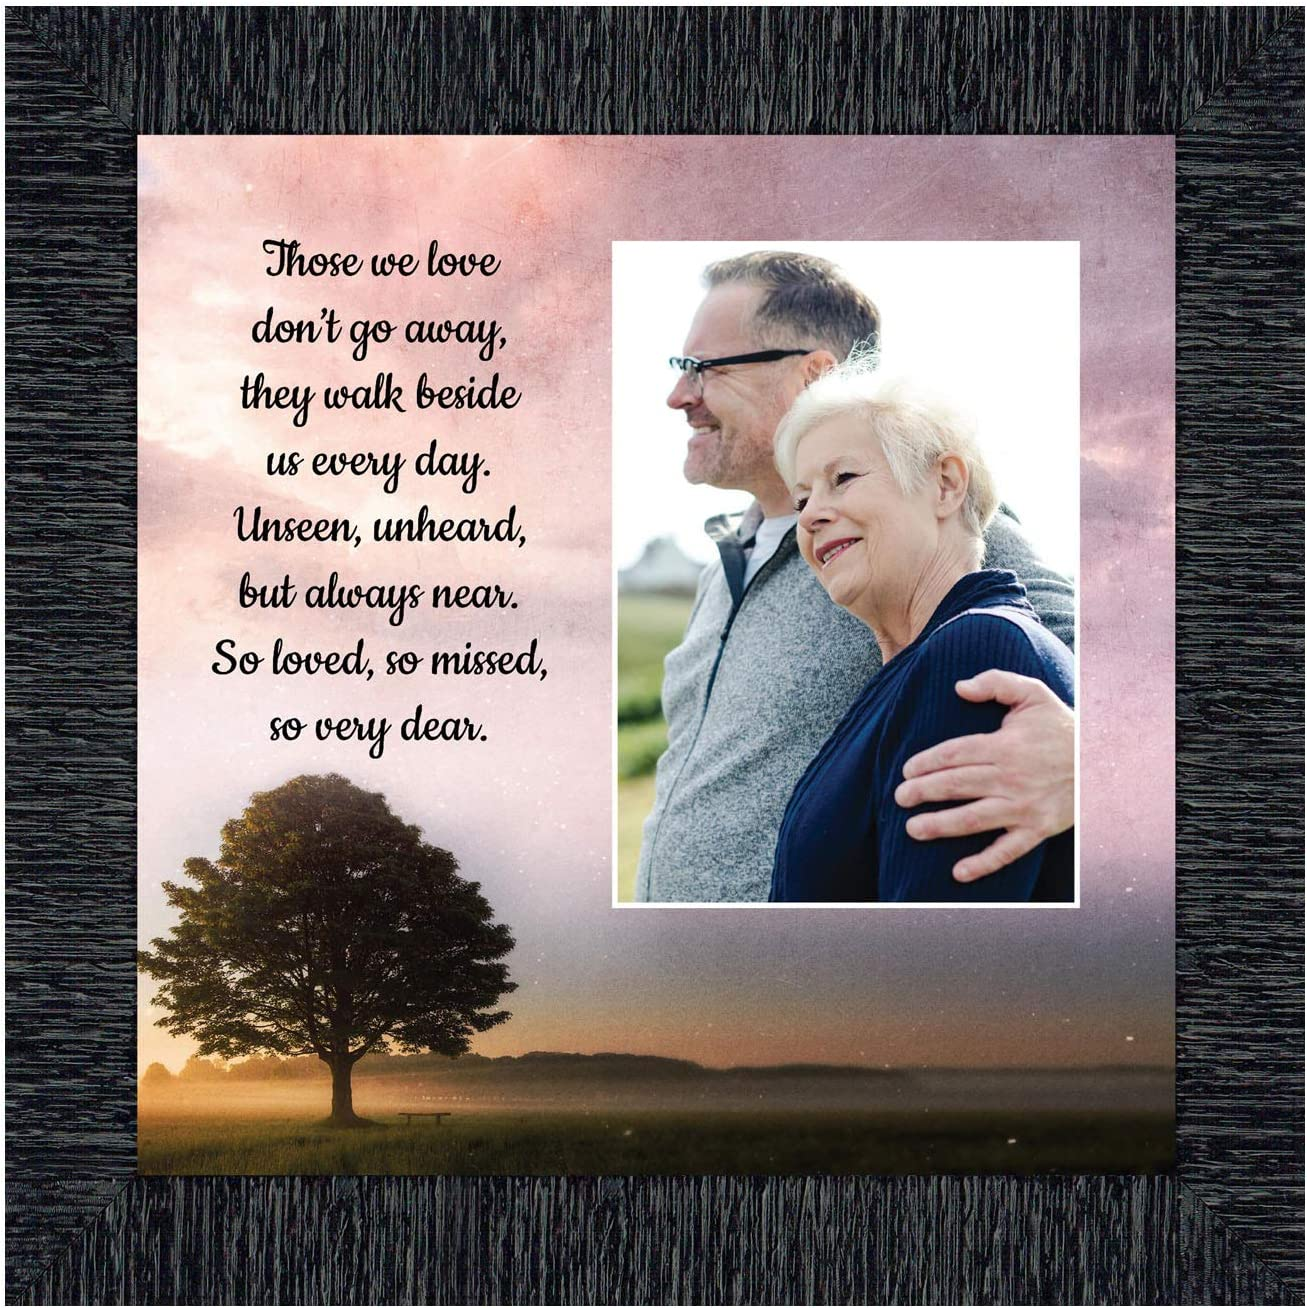 Those We Love Sympathy Gift Picture Frames, Memorial Gifts for Your Condolence Gift Baskets and Sympathy Cards, Bereavement Gifts, in Memory of Loved One, Framed Home Décor, 6433CH